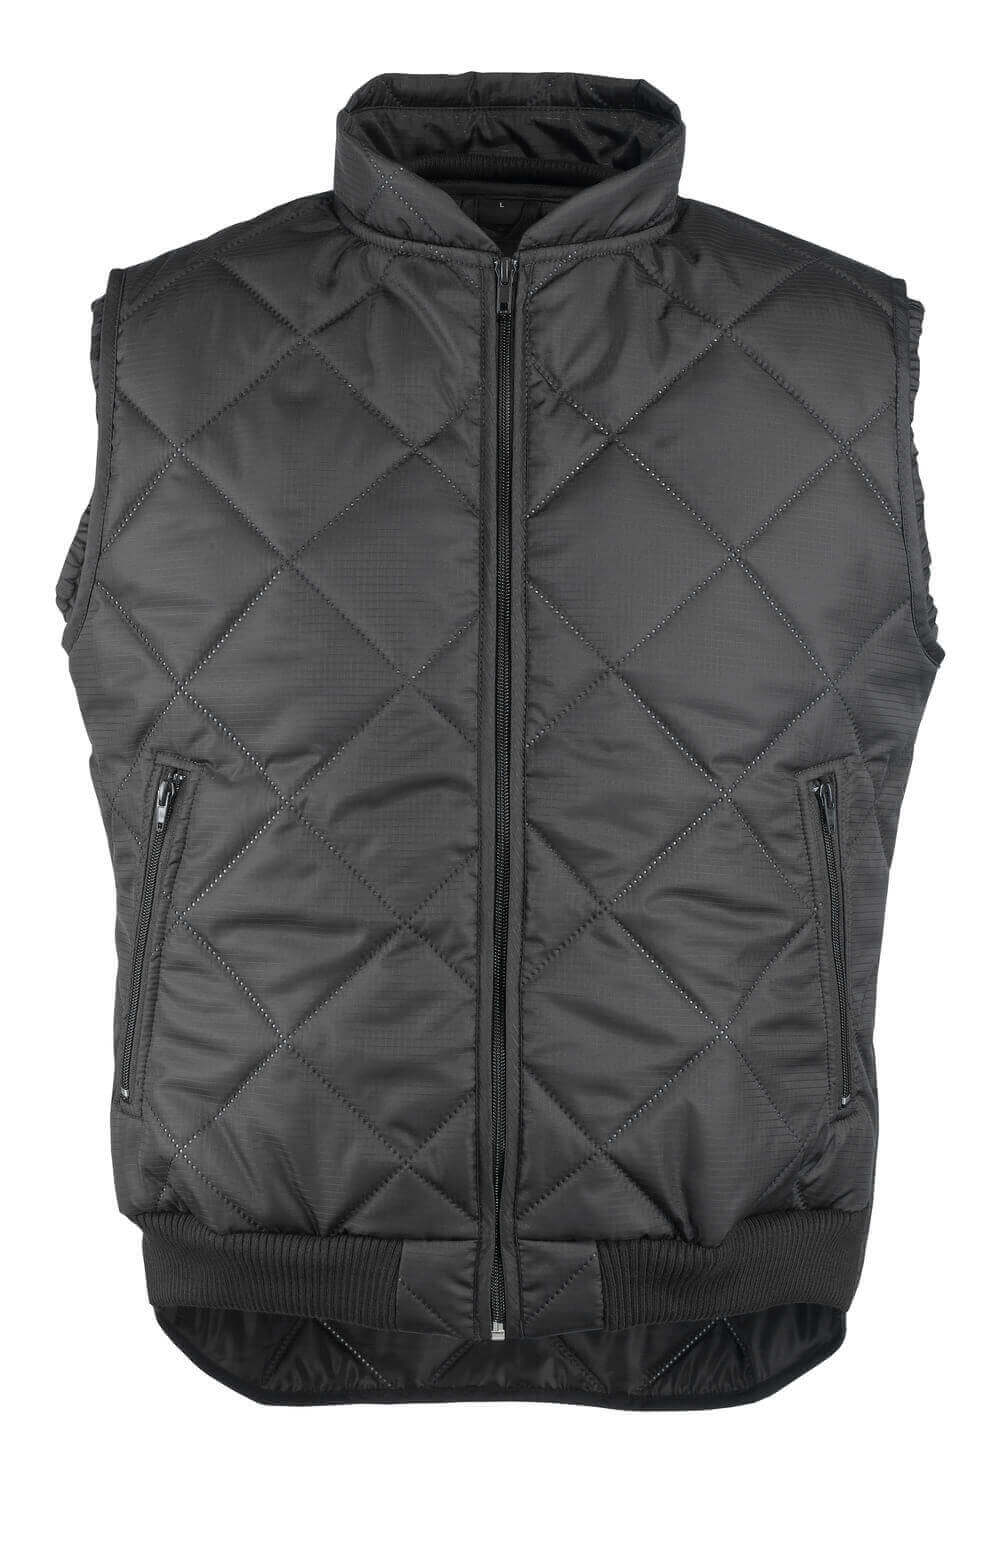 13565-905-09 Thermal Gilet - black